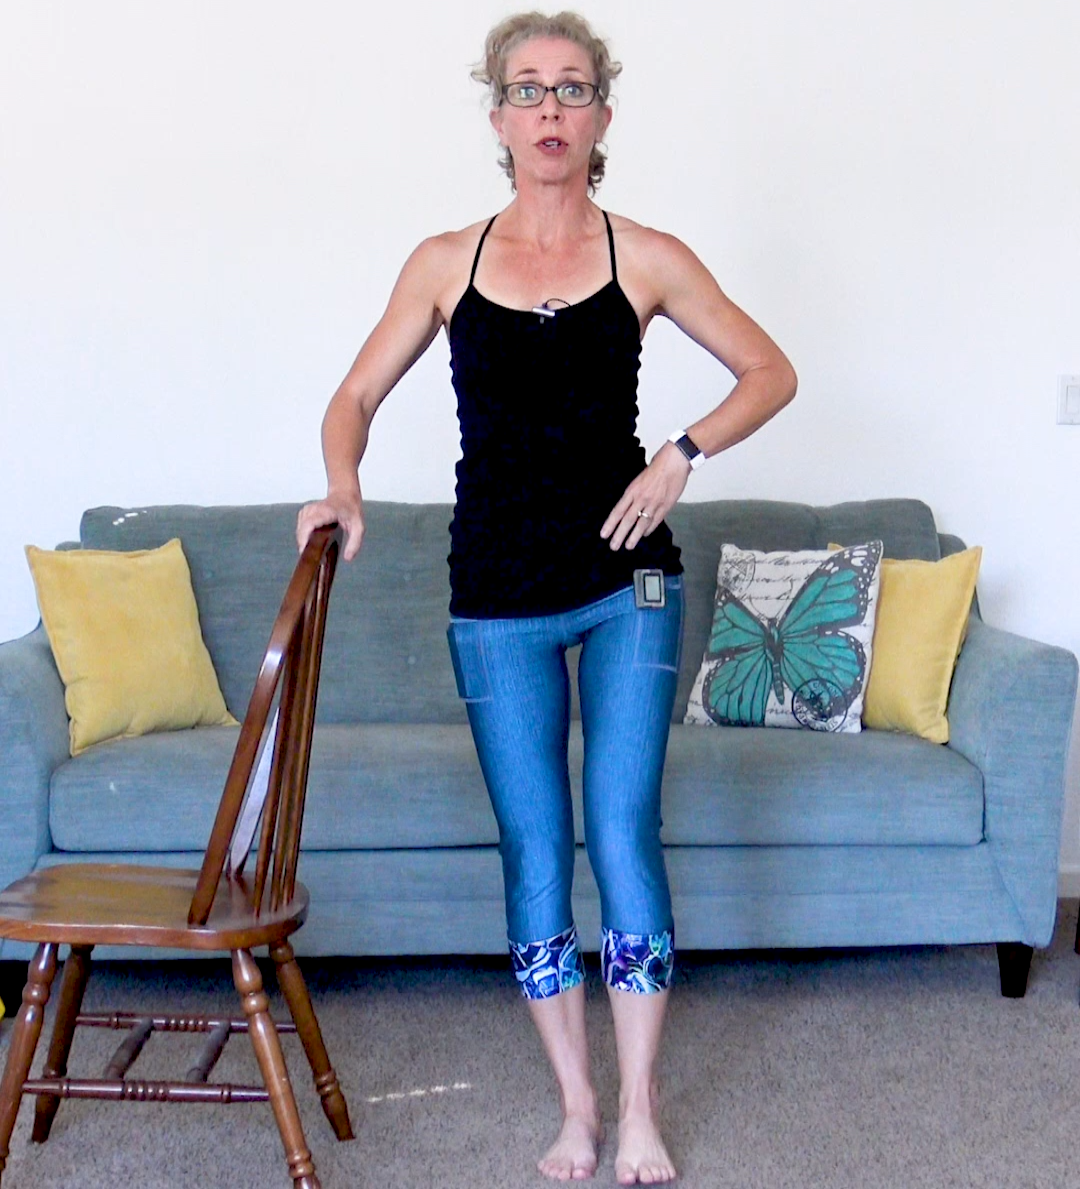 35 Minute SQUAT FREE Lower Body Workout for Women over 50